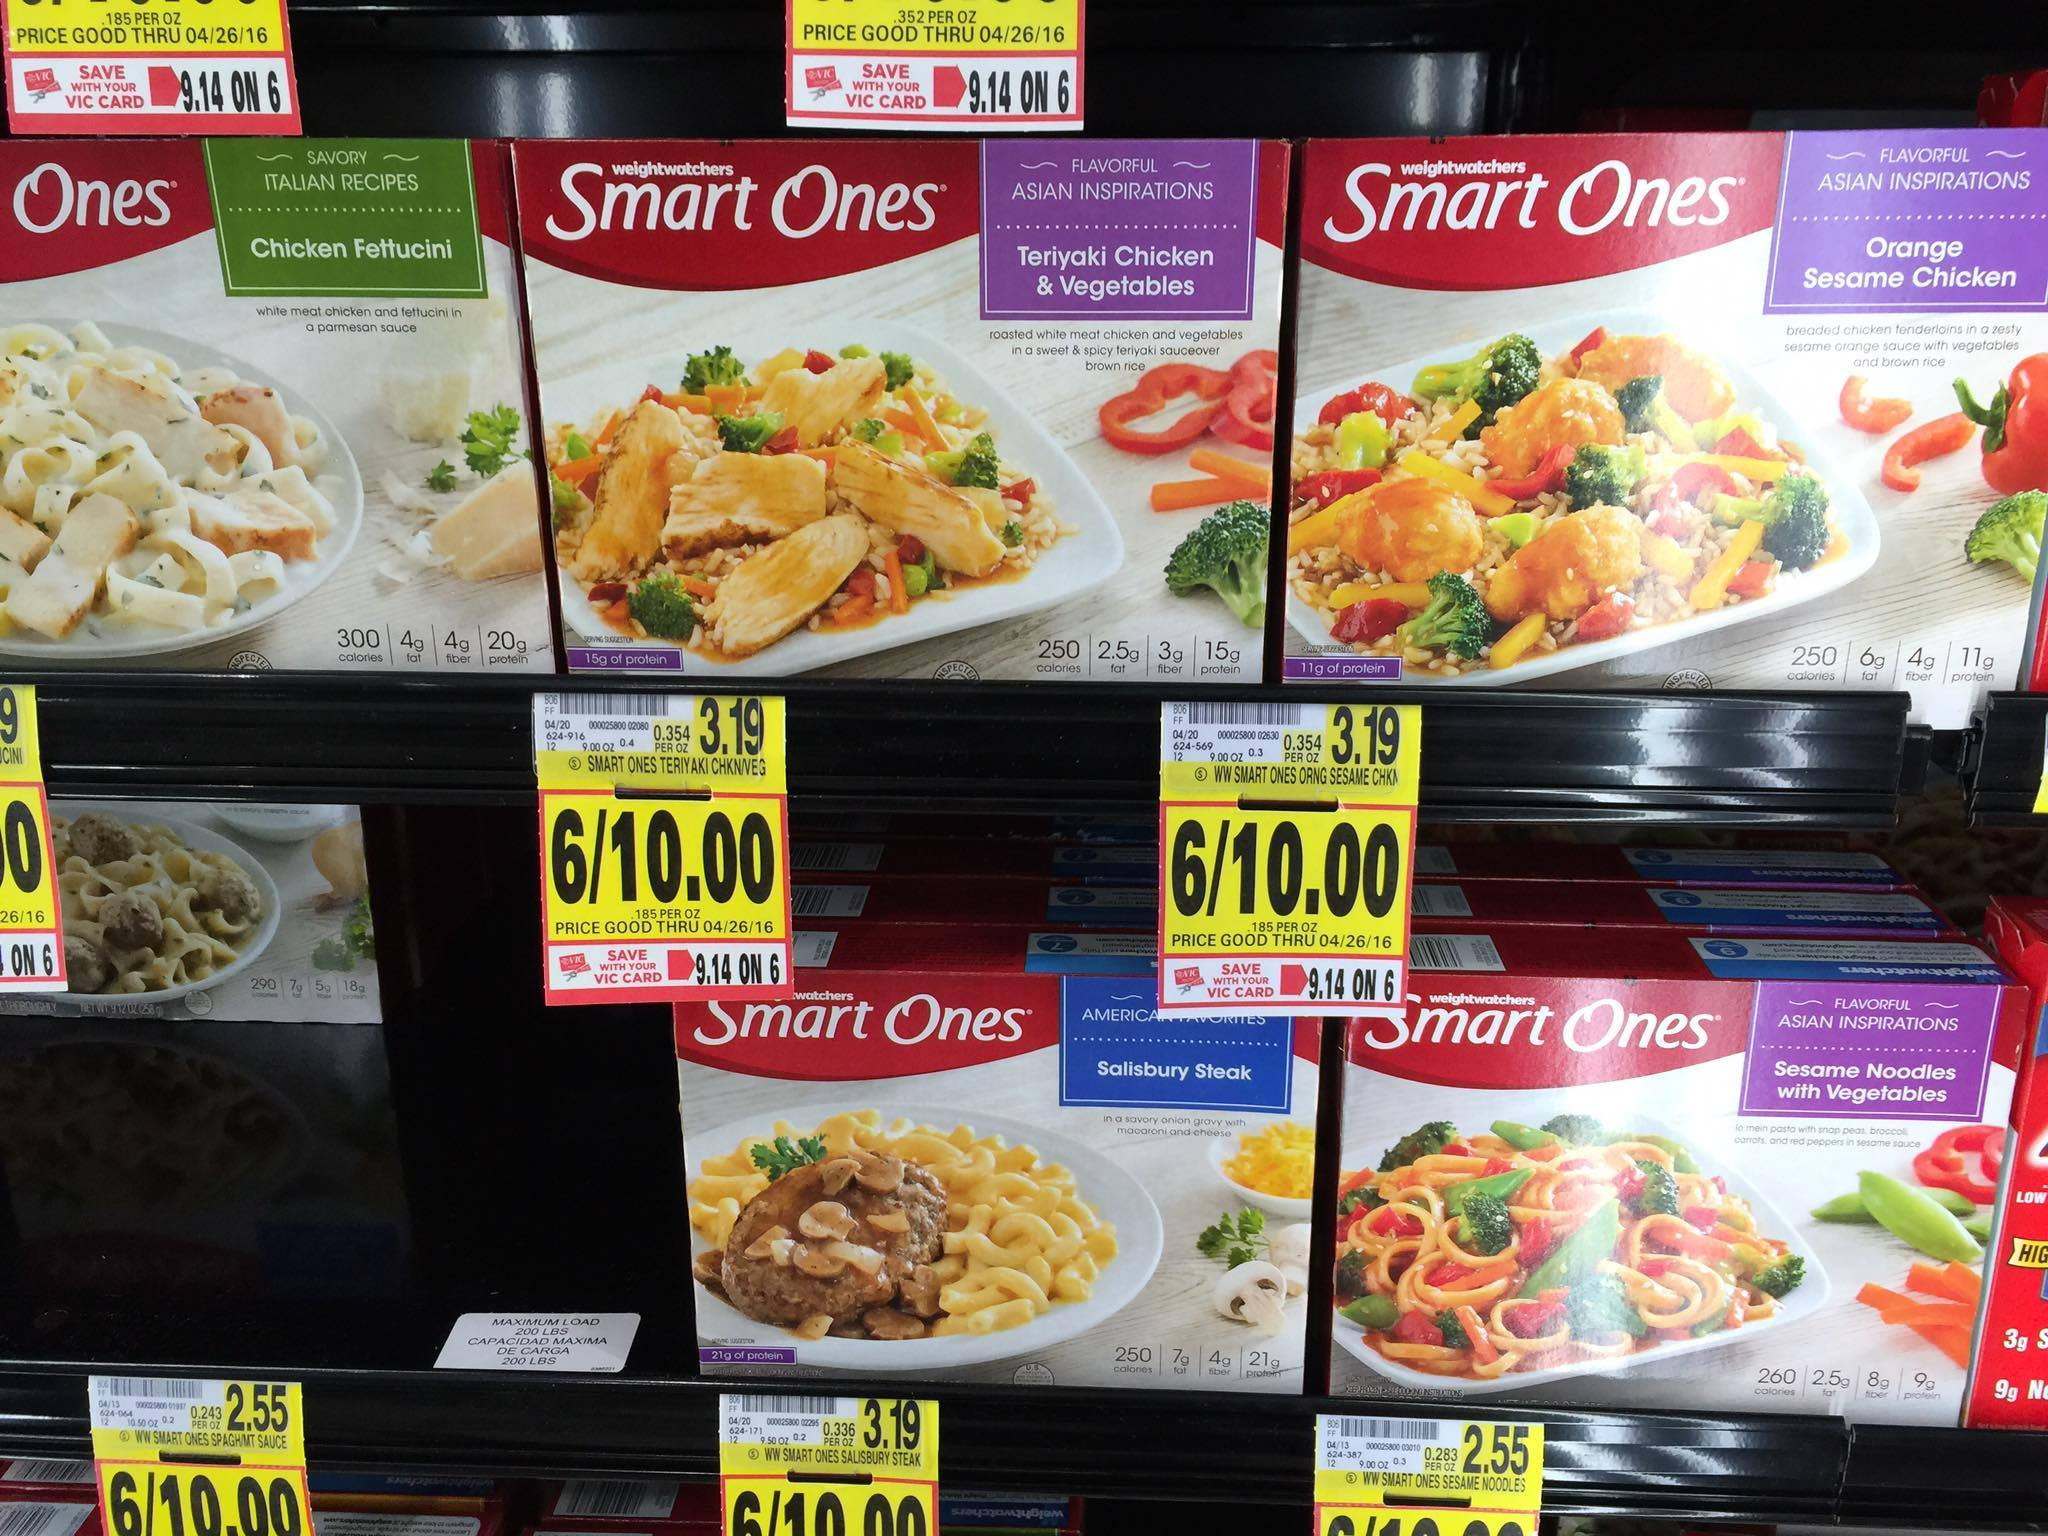 Through 3/30, Target has Weight Watchers Smart Ones meals on sale for as low as $ (depending on your local Target) AND when you buy 5, you'll get 1 FREE! Plus, check out the Smart Ones printable coupons available * $4/10 Weight Watchers Smart Ones Product * $3/10 Weight Watchers Smart Ones Product * $5/12 Weight Watchers Smart Ones Product.